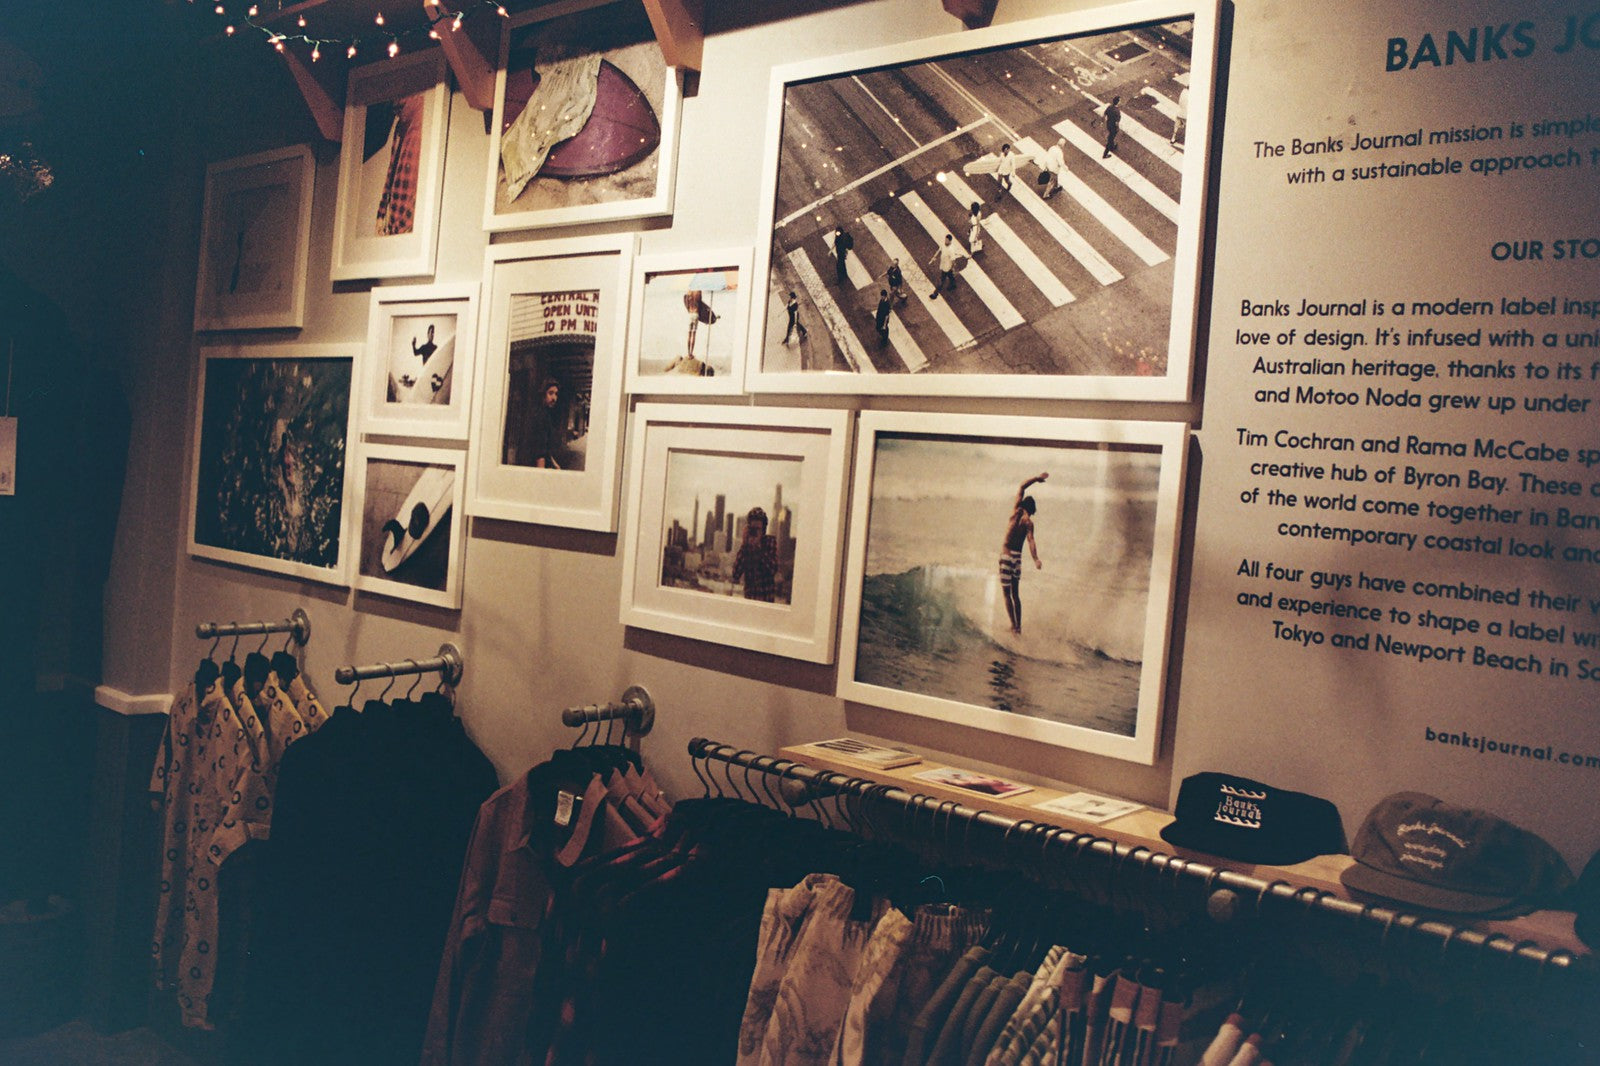 Photo of the Holiday pop up by Banks Journal at Annex Surf Supply